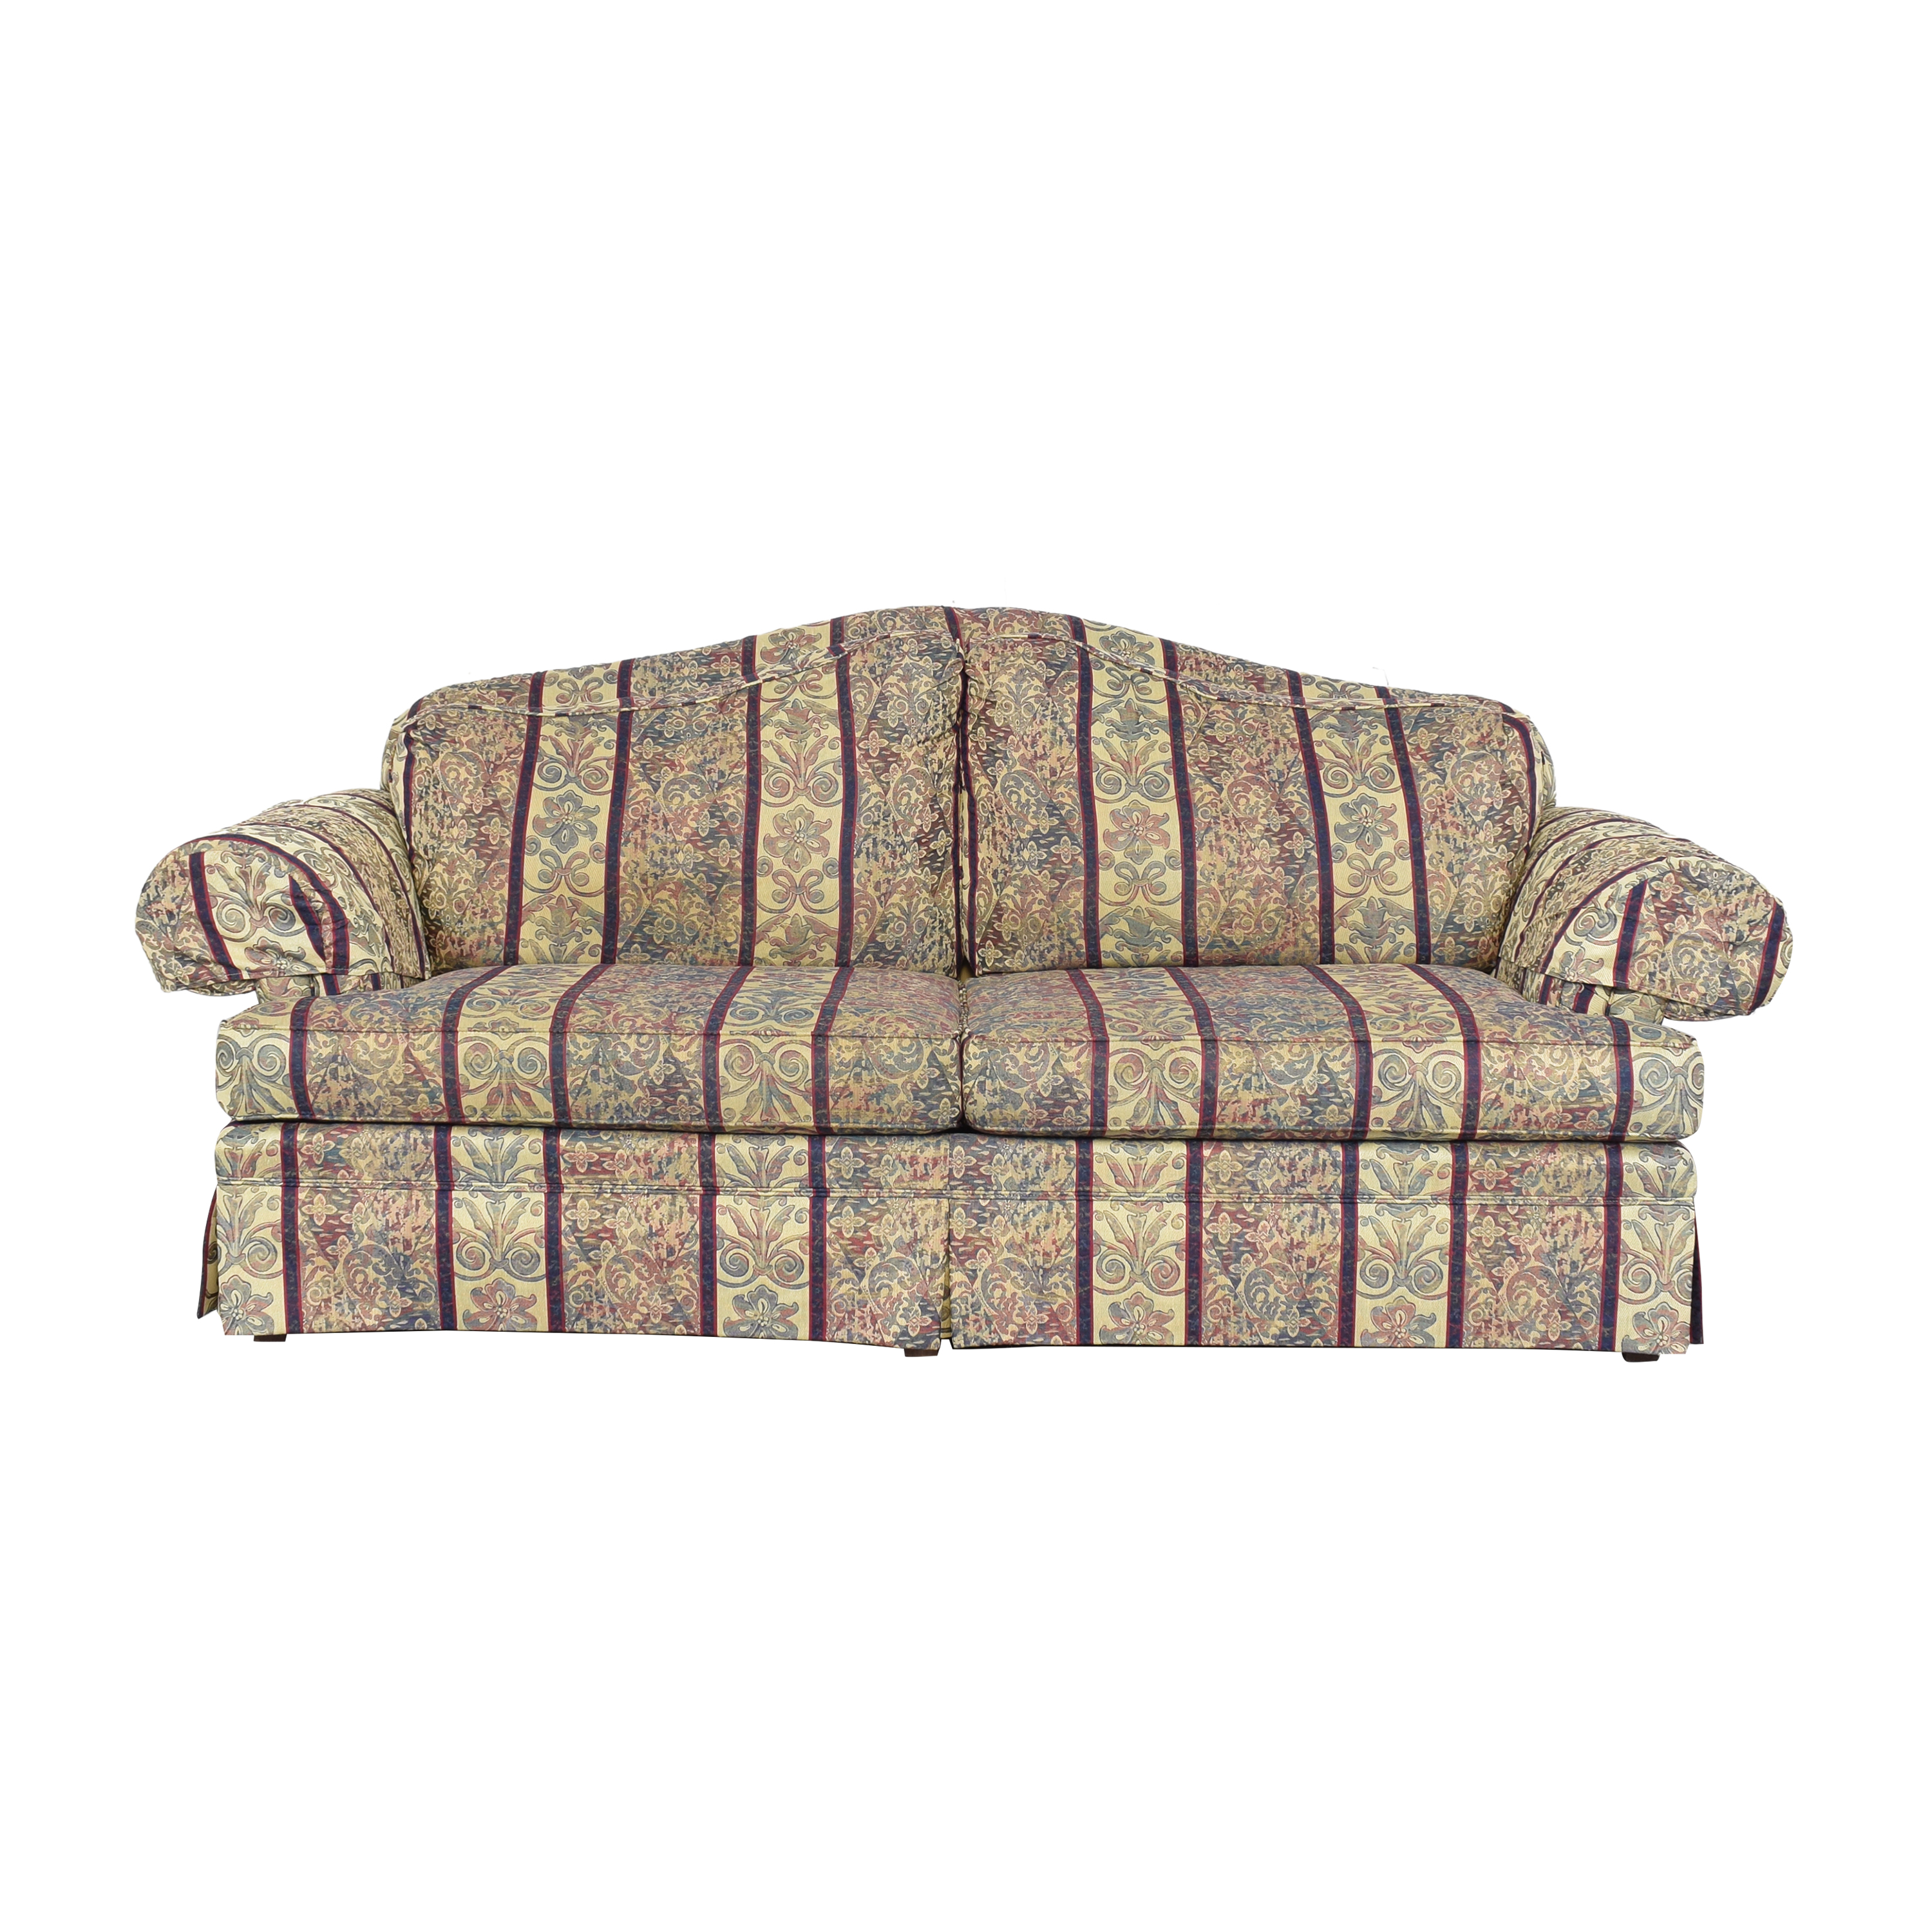 Broyhill Furniture Broyhill Skirted Sofa discount